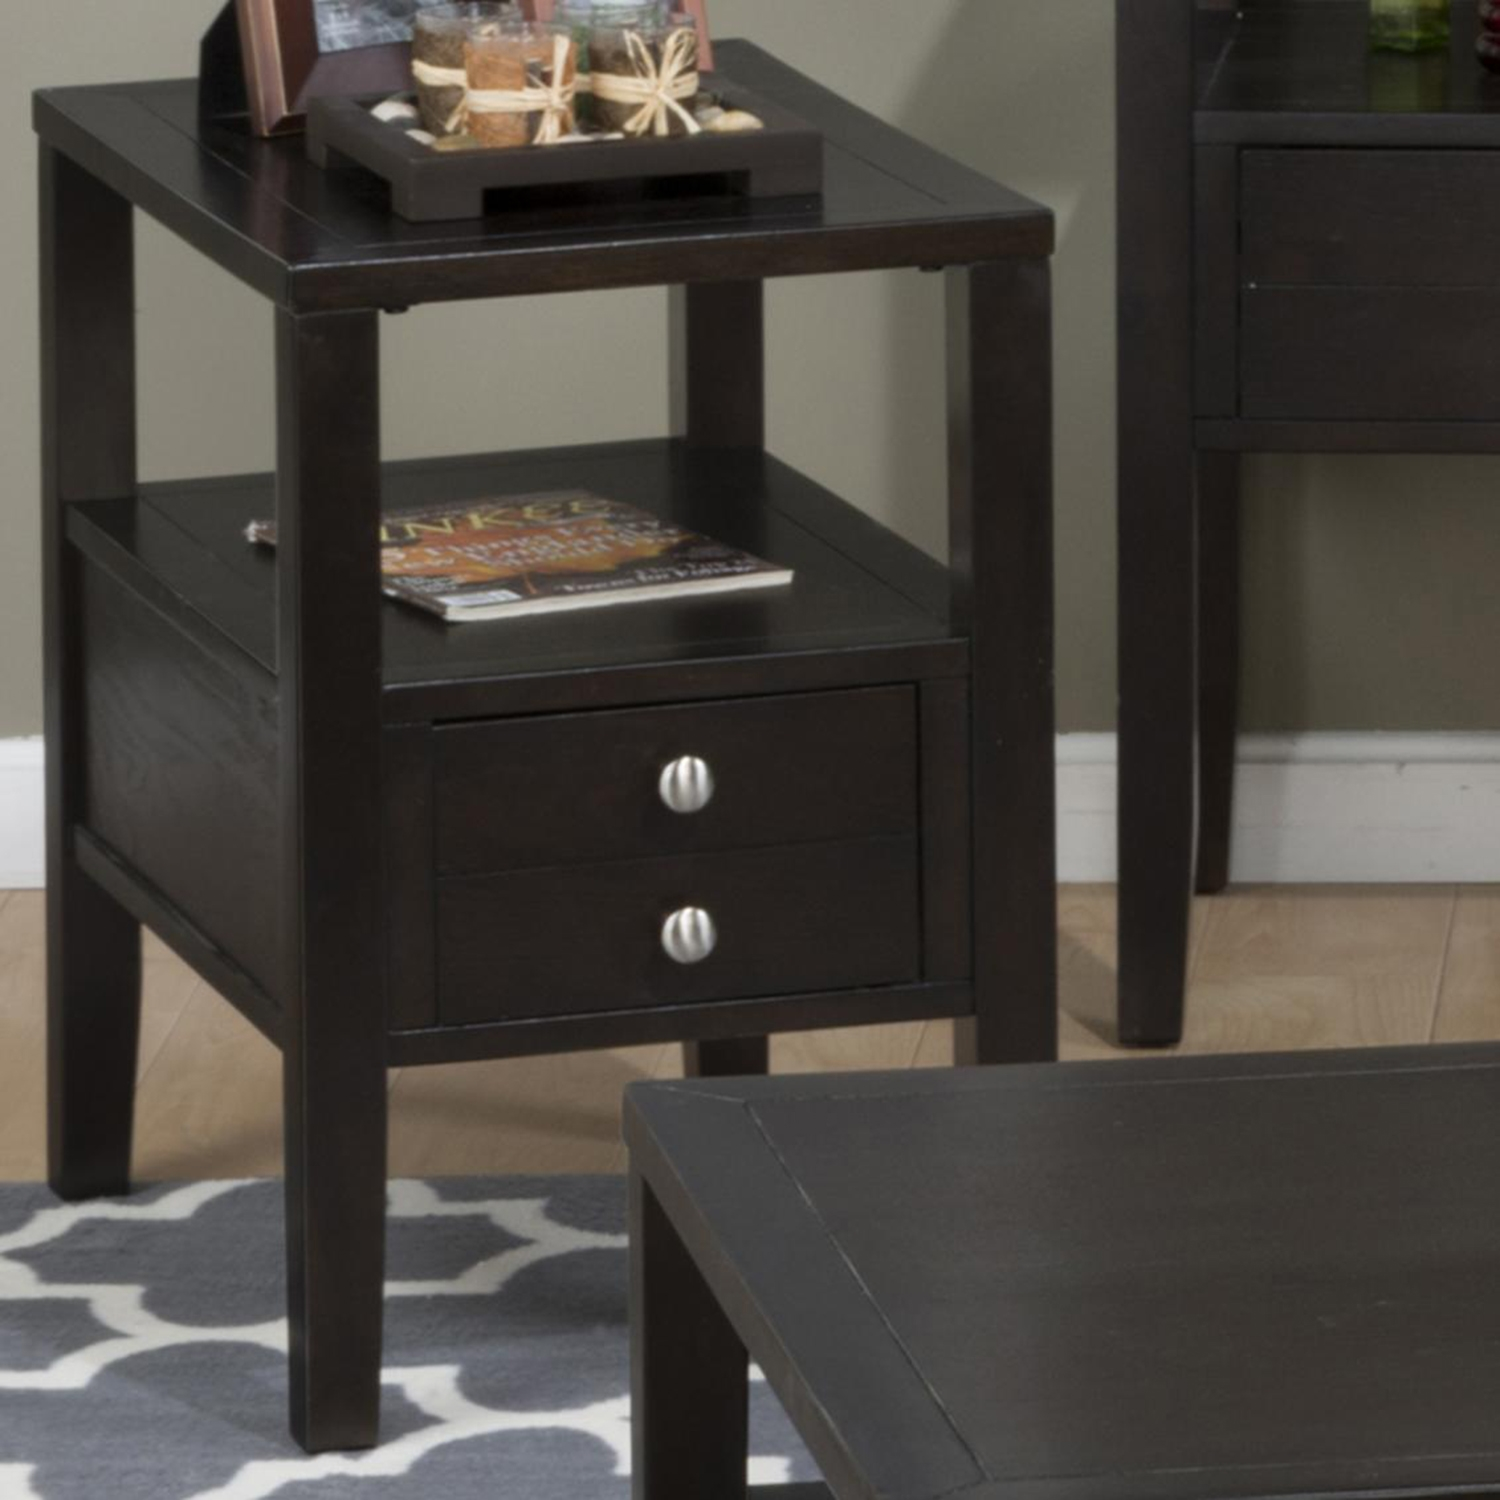 Hamilton Chairside Table - Espresso